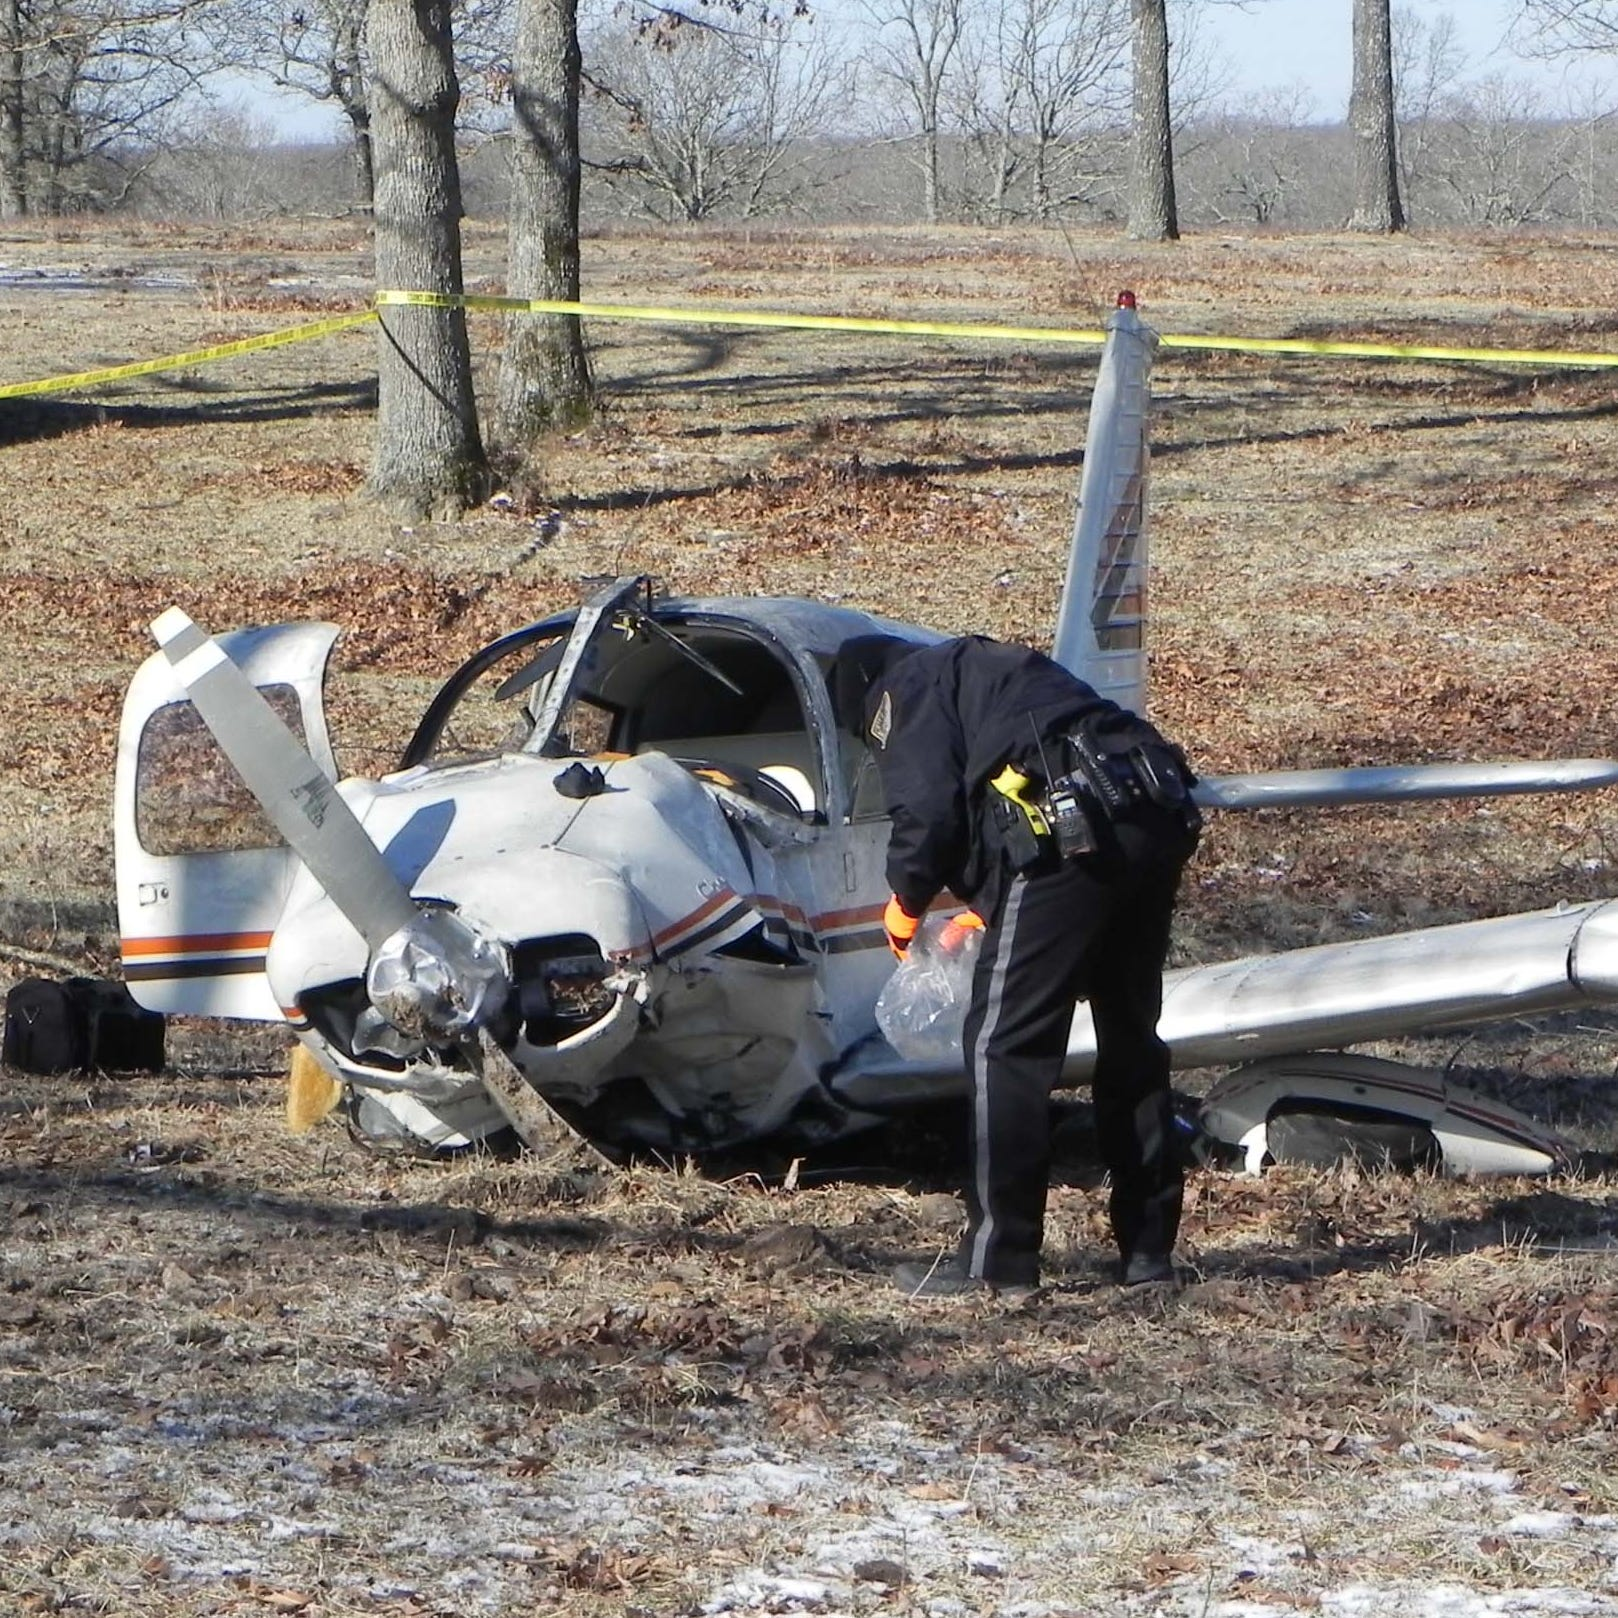 Springfield lawyer dies after single-engine airplane crashes in Texas County